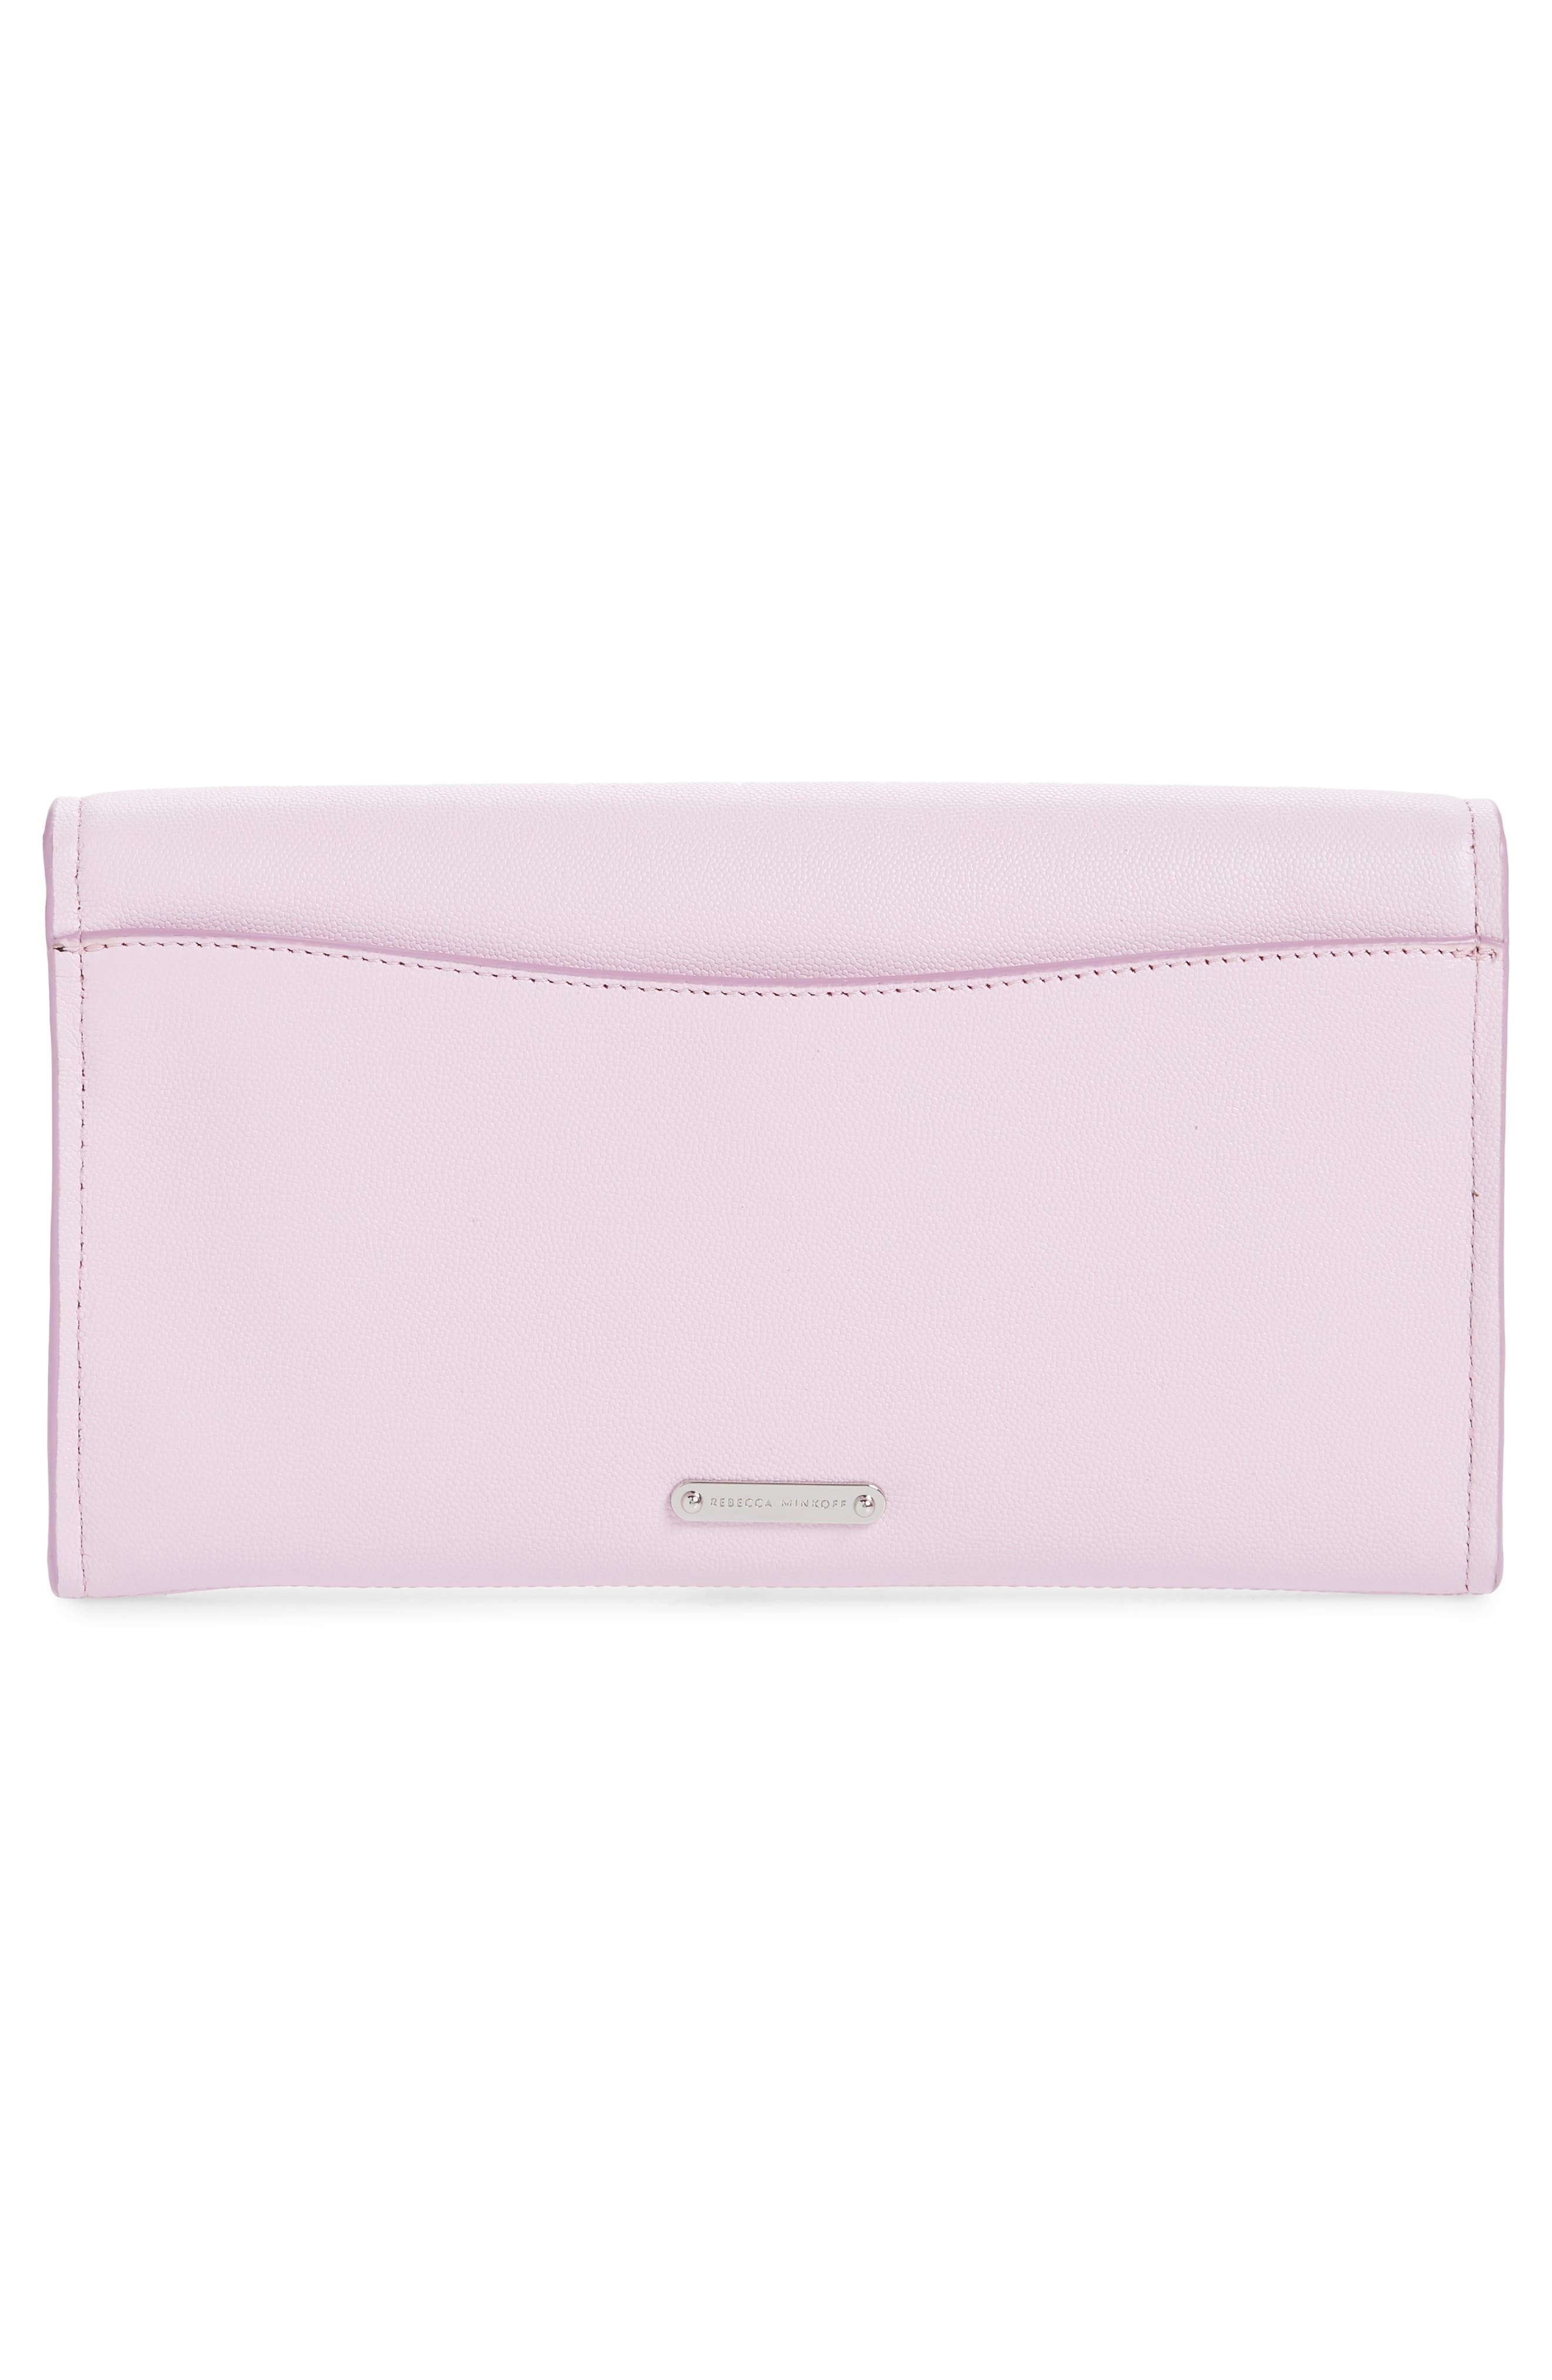 REBECCA MINKOFF, Jean Leather Clutch, Alternate thumbnail 4, color, LIGHT ORCHID